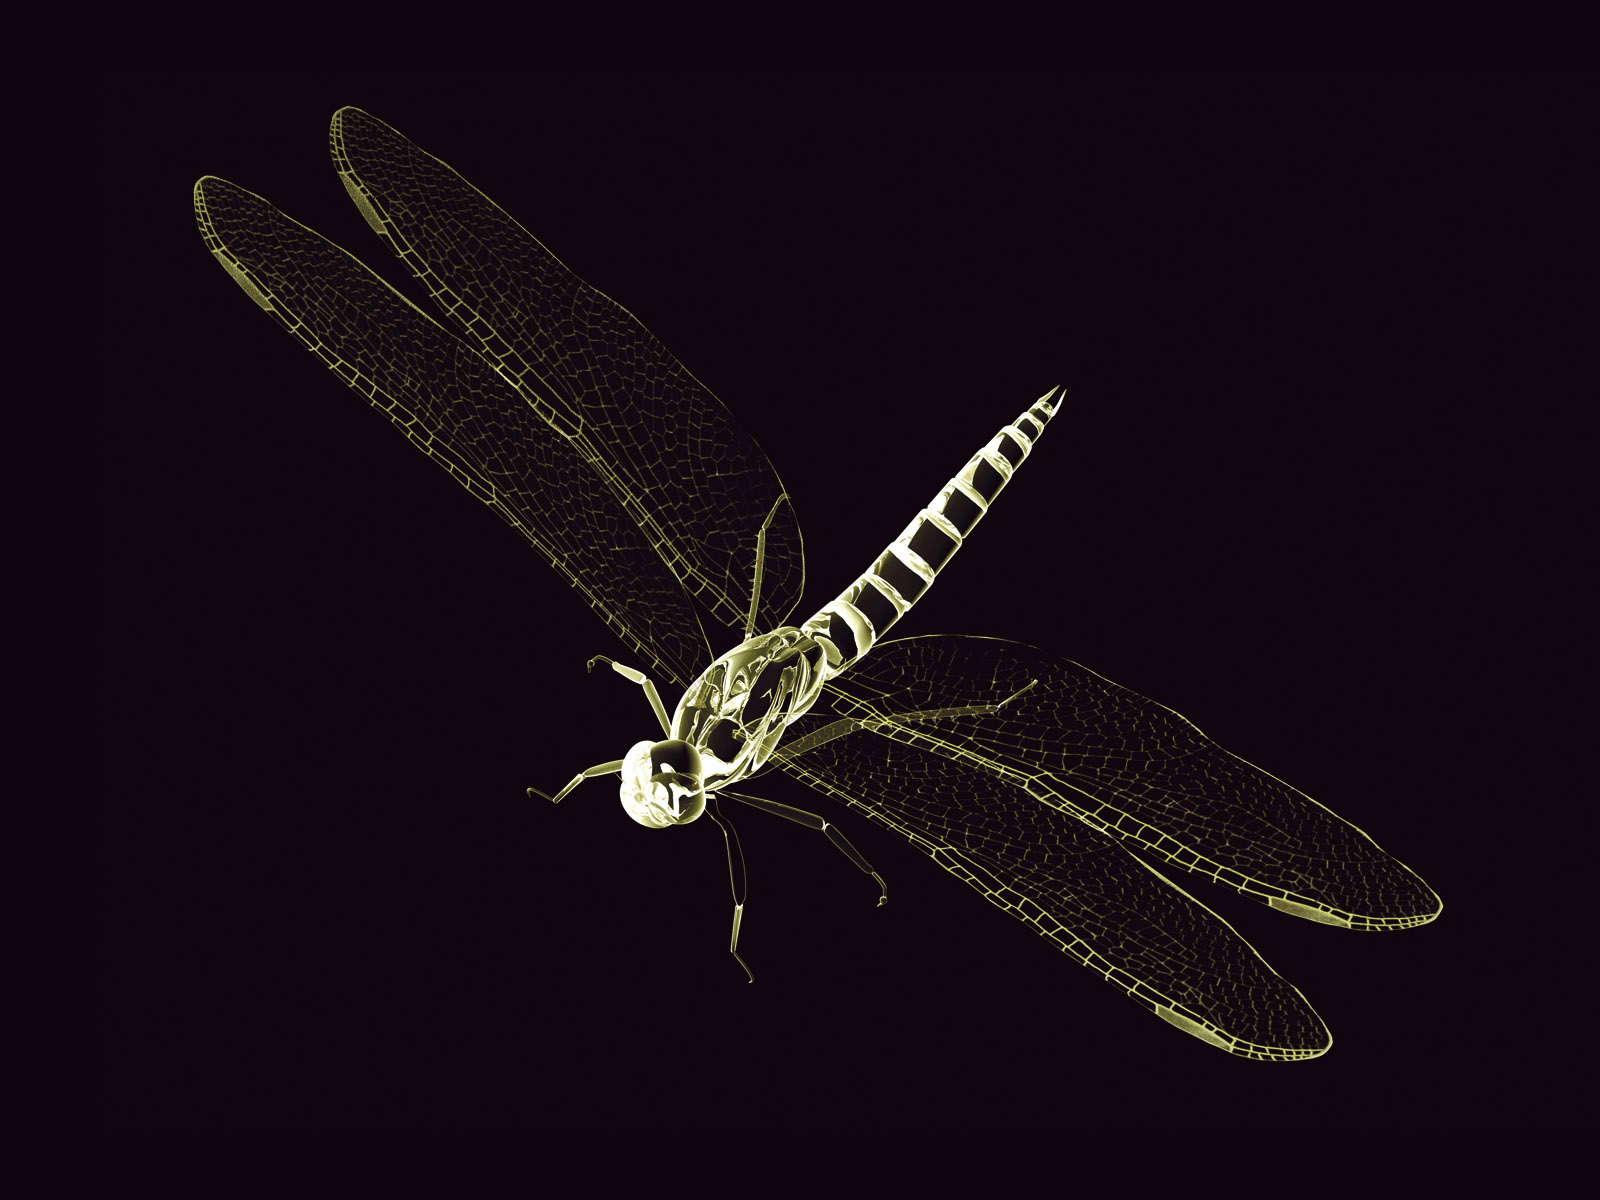 Dragon Fly wallpapers Dragon Fly stock photos 1600x1200